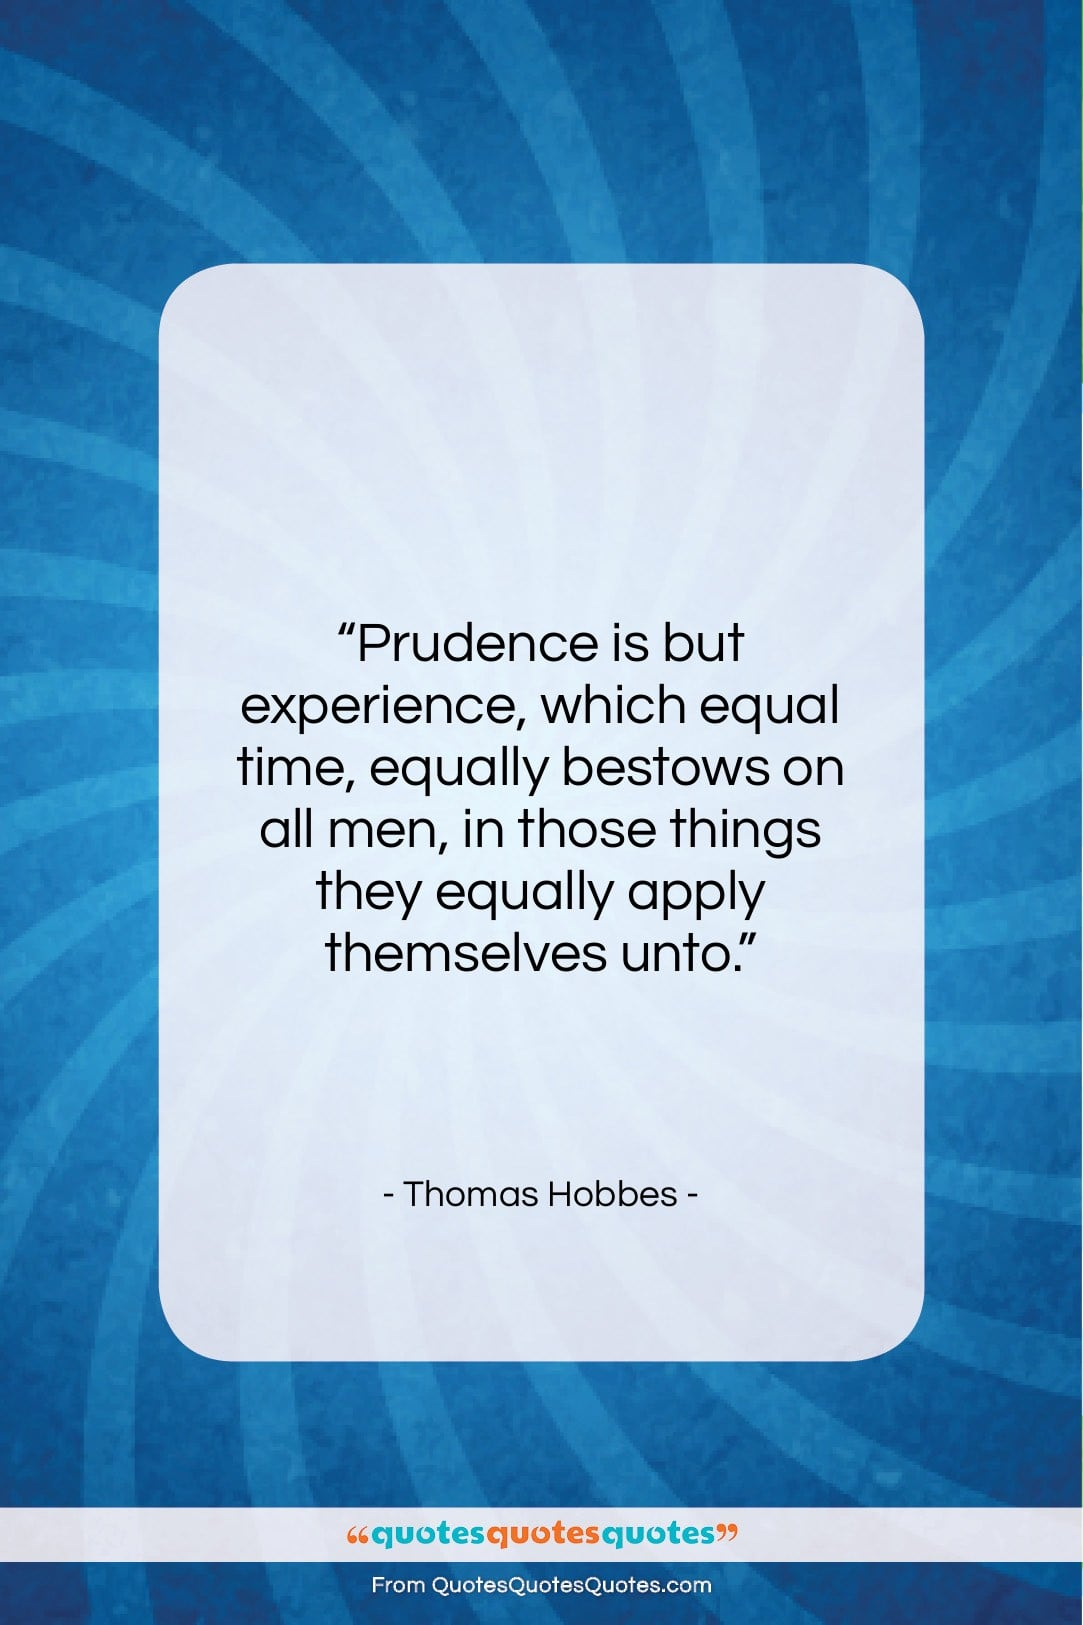 """Thomas Hobbes quote: """"Prudence is but experience, which equal time,…""""- at QuotesQuotesQuotes.com"""